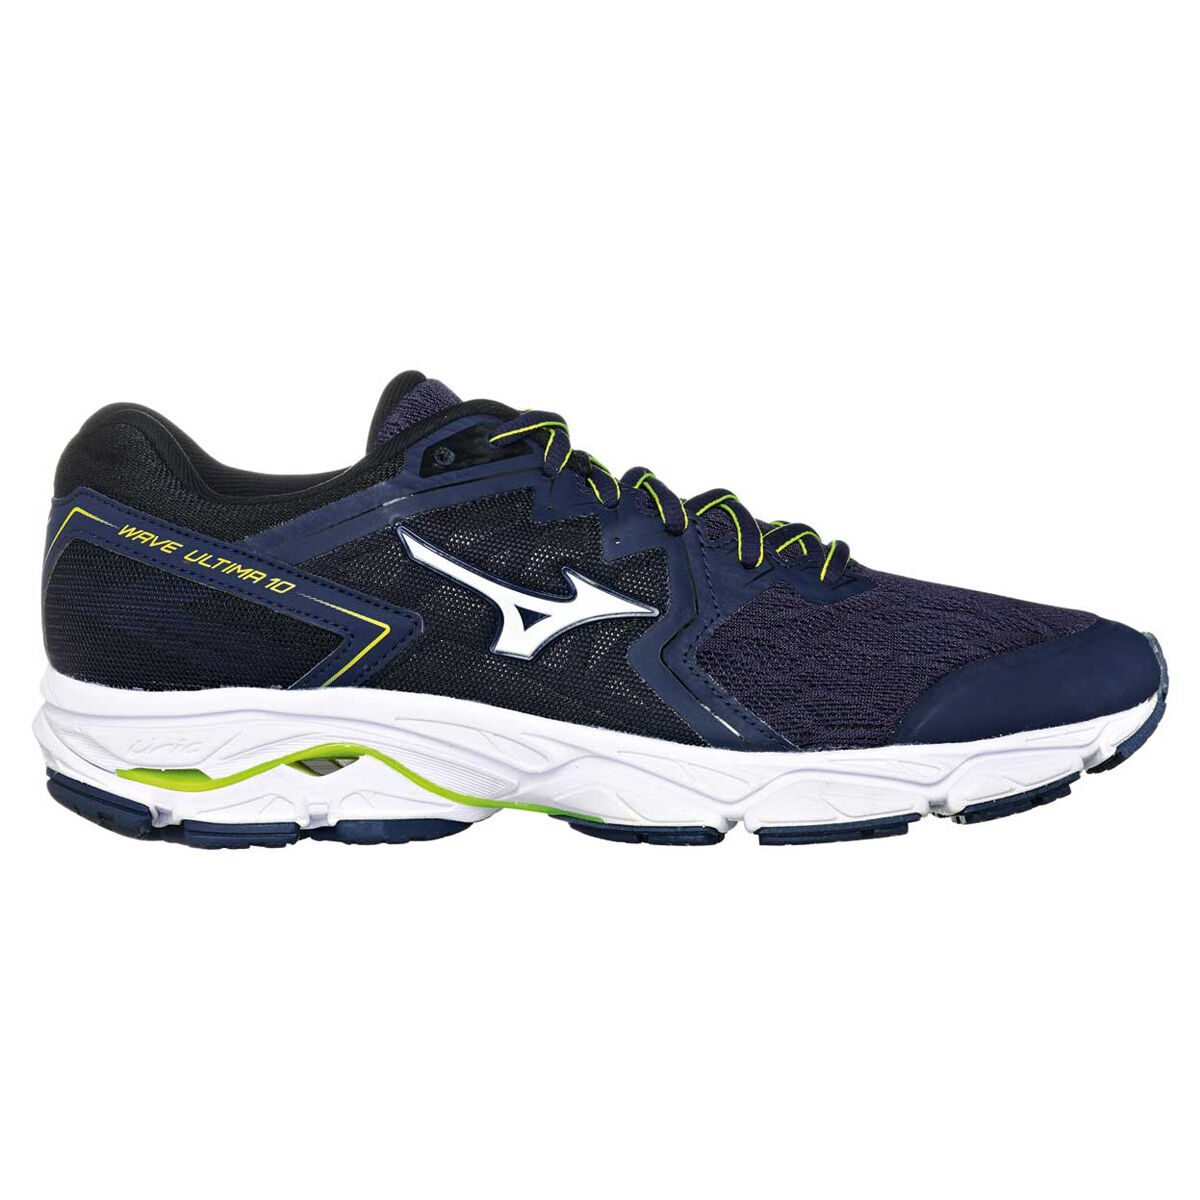 f1ada1290f03 ... india 5bd30 4118a; best price mizuno wave ultima 10 mens running shoes  blue white us 8 31008 12355